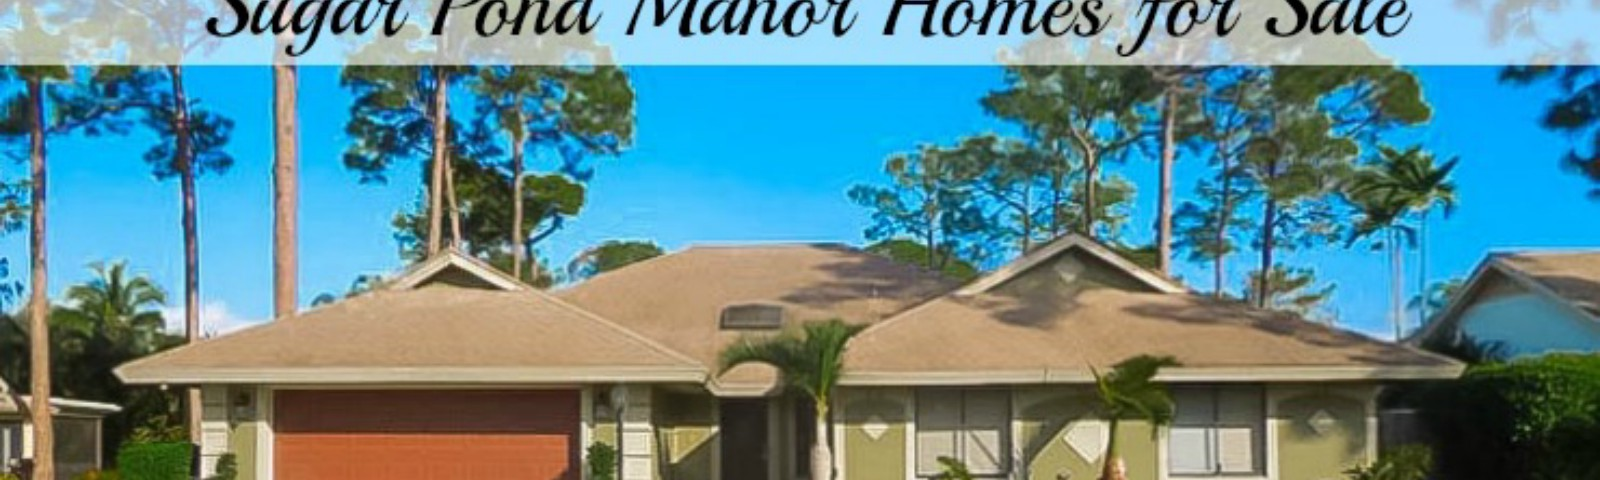 Sugar Pond Manor Homes for Sale in Wellington Florida 33414